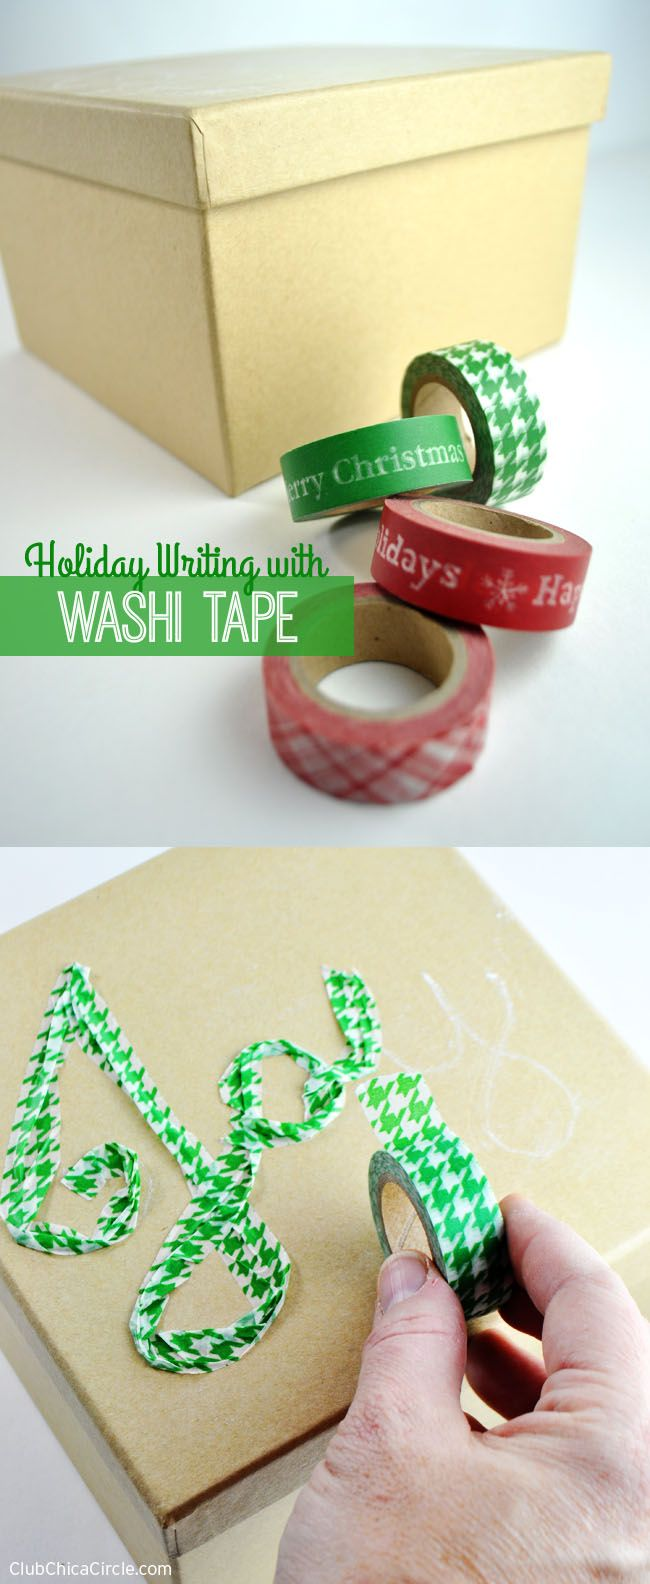 How to decorate a plain holiday package with washi tape